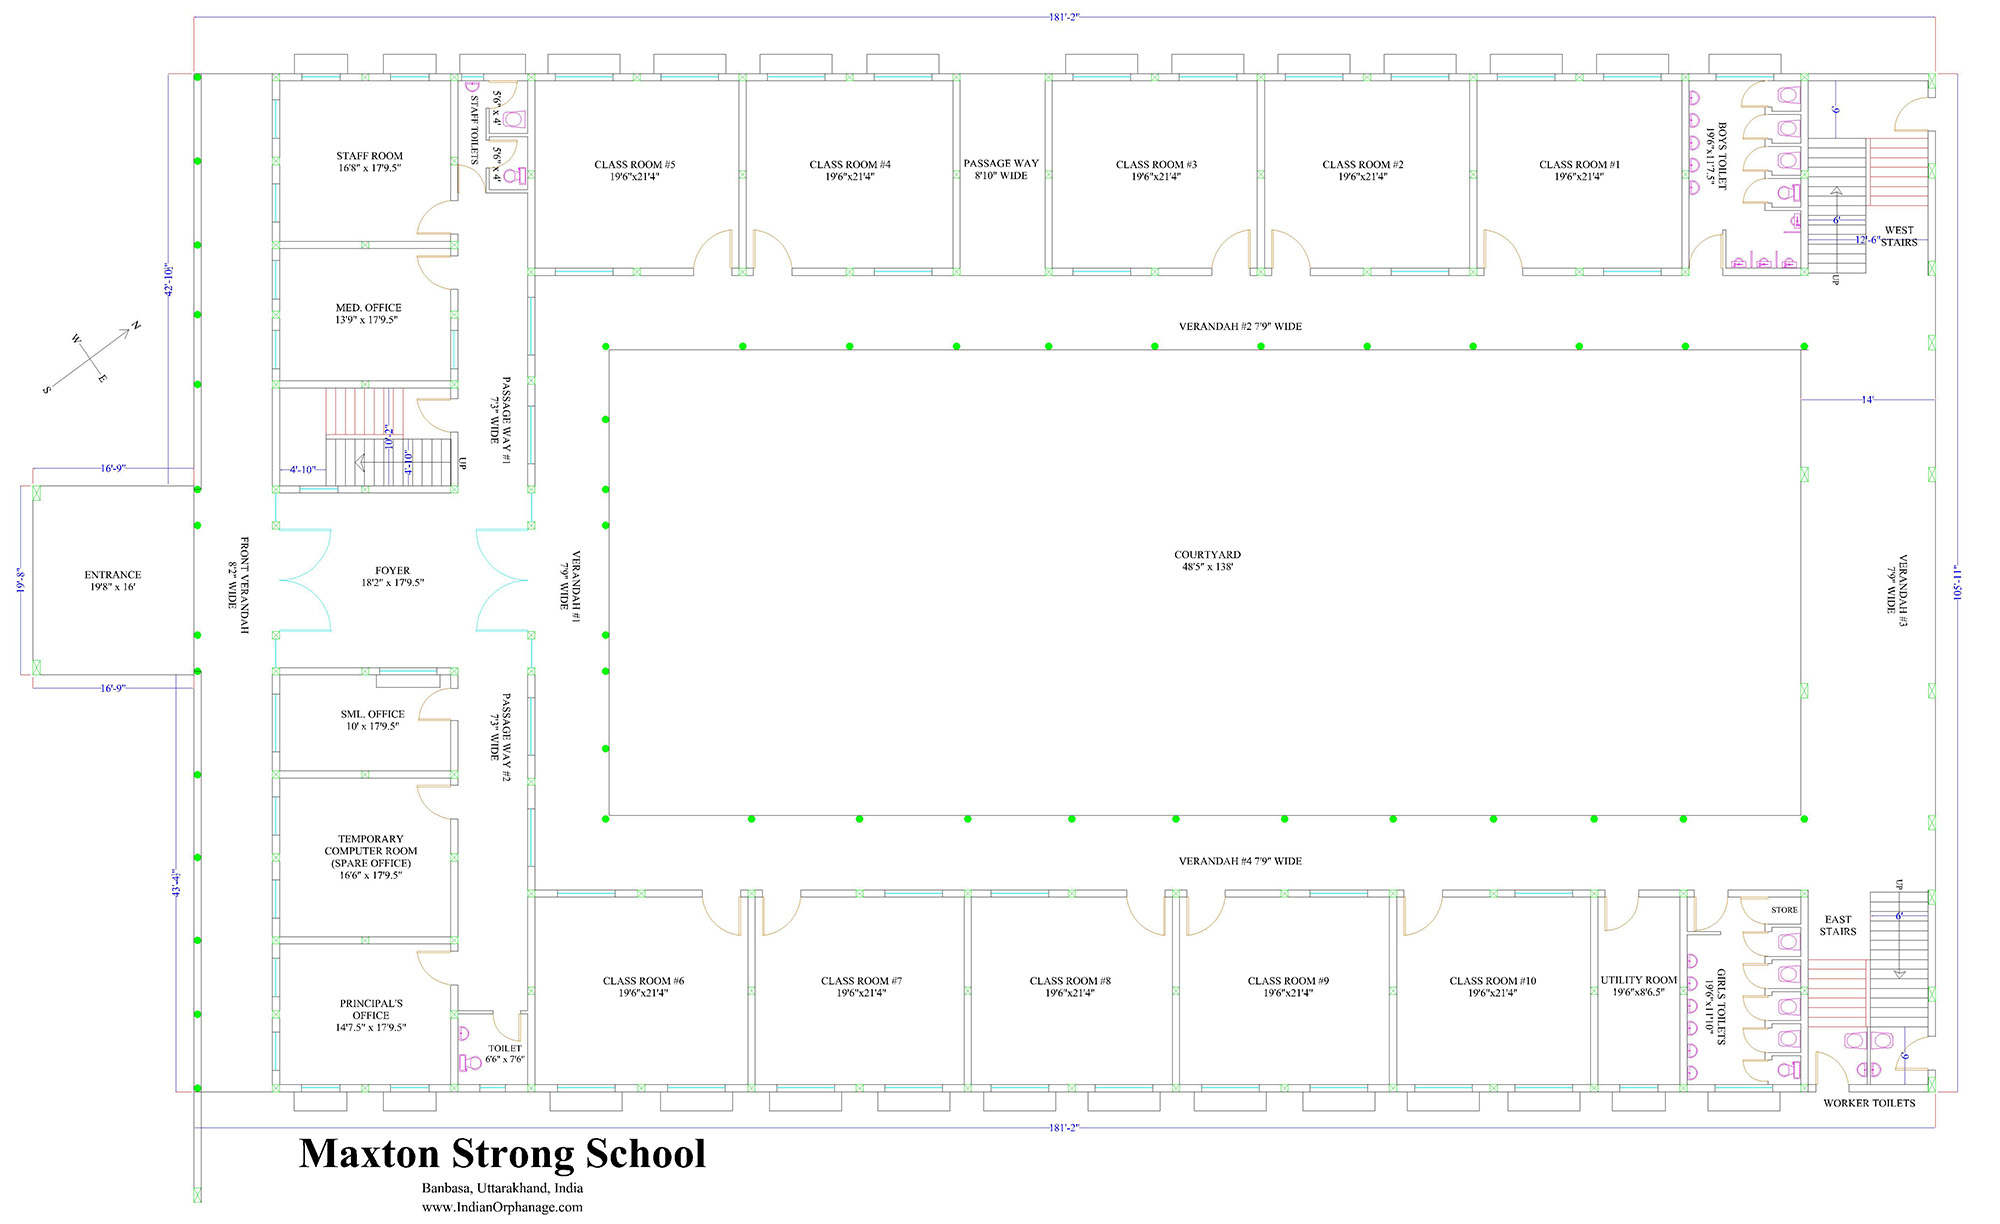 Primary school blueprints indian orphanage primary school blueprints malvernweather Choice Image